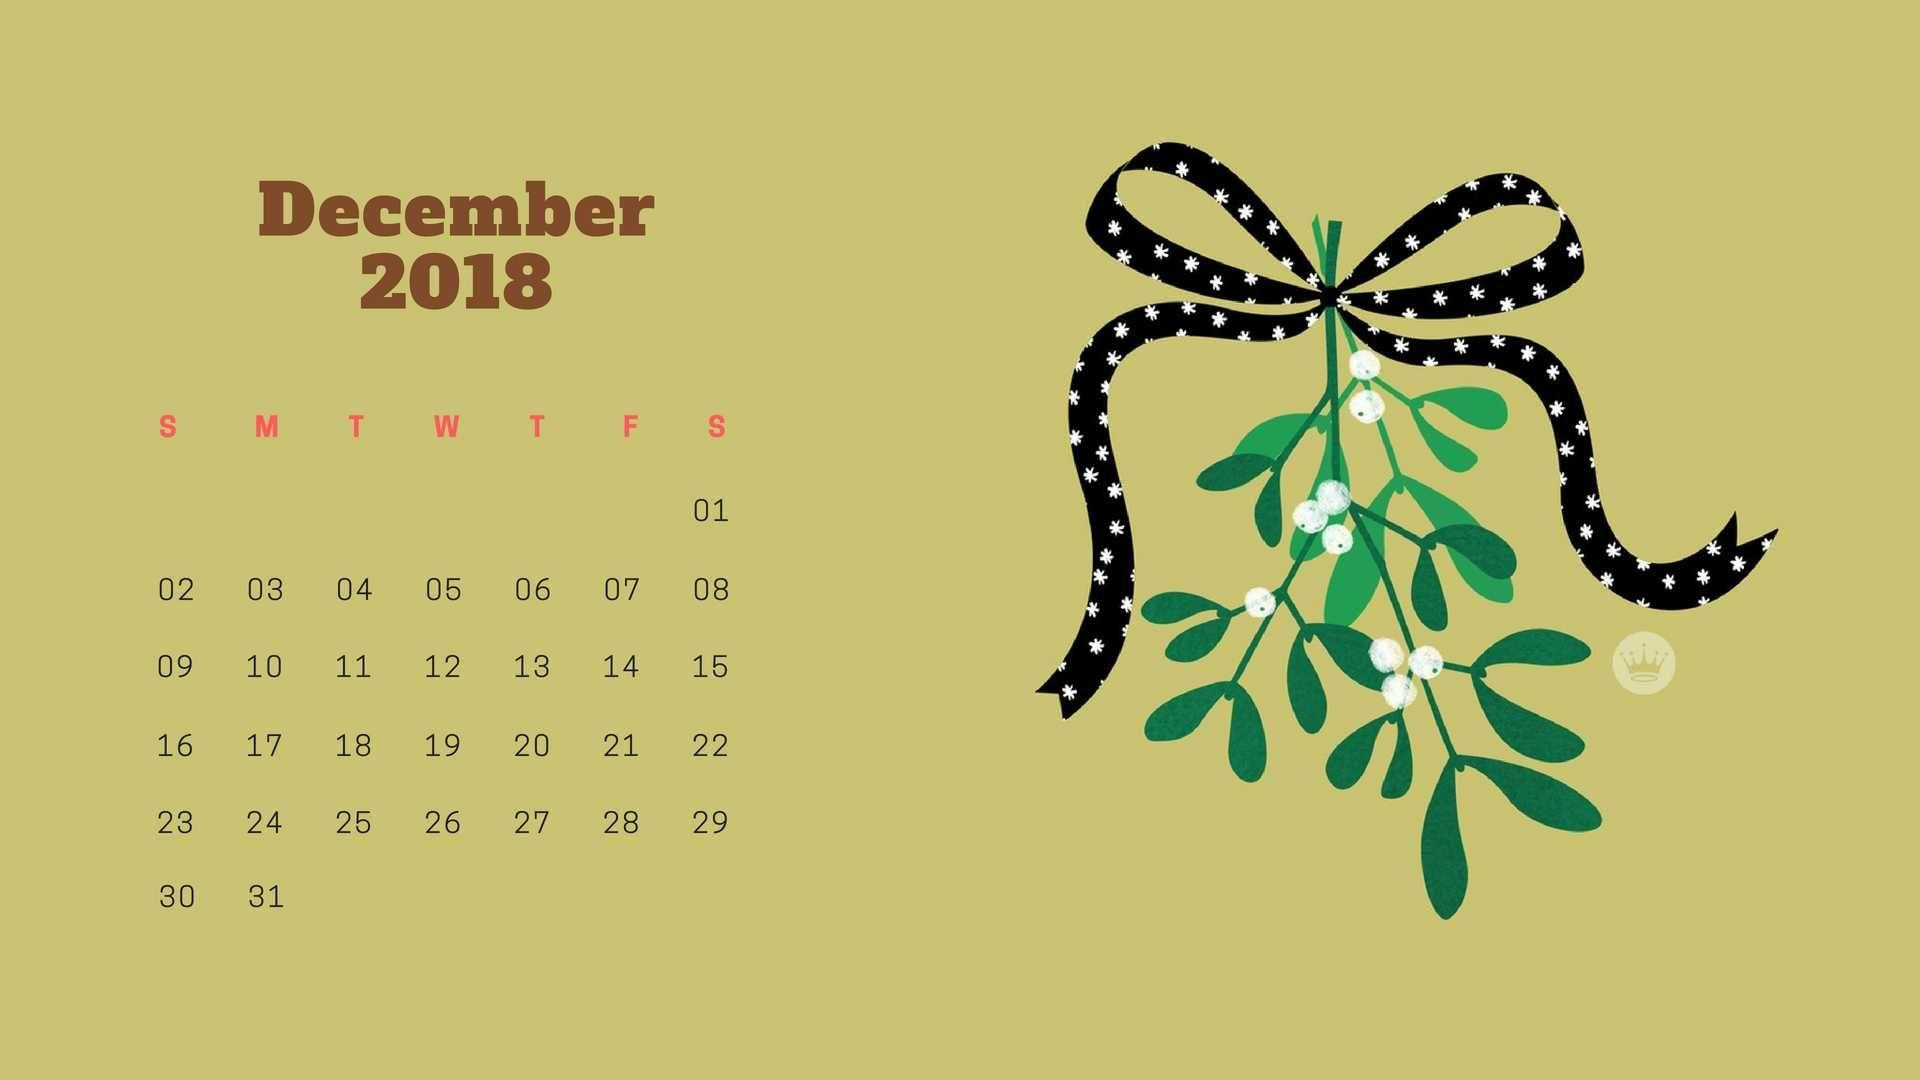 Desktop Calendar Wallpaper December 2019 December 2018 Calendar Wallpapers   Wallpaper Cave